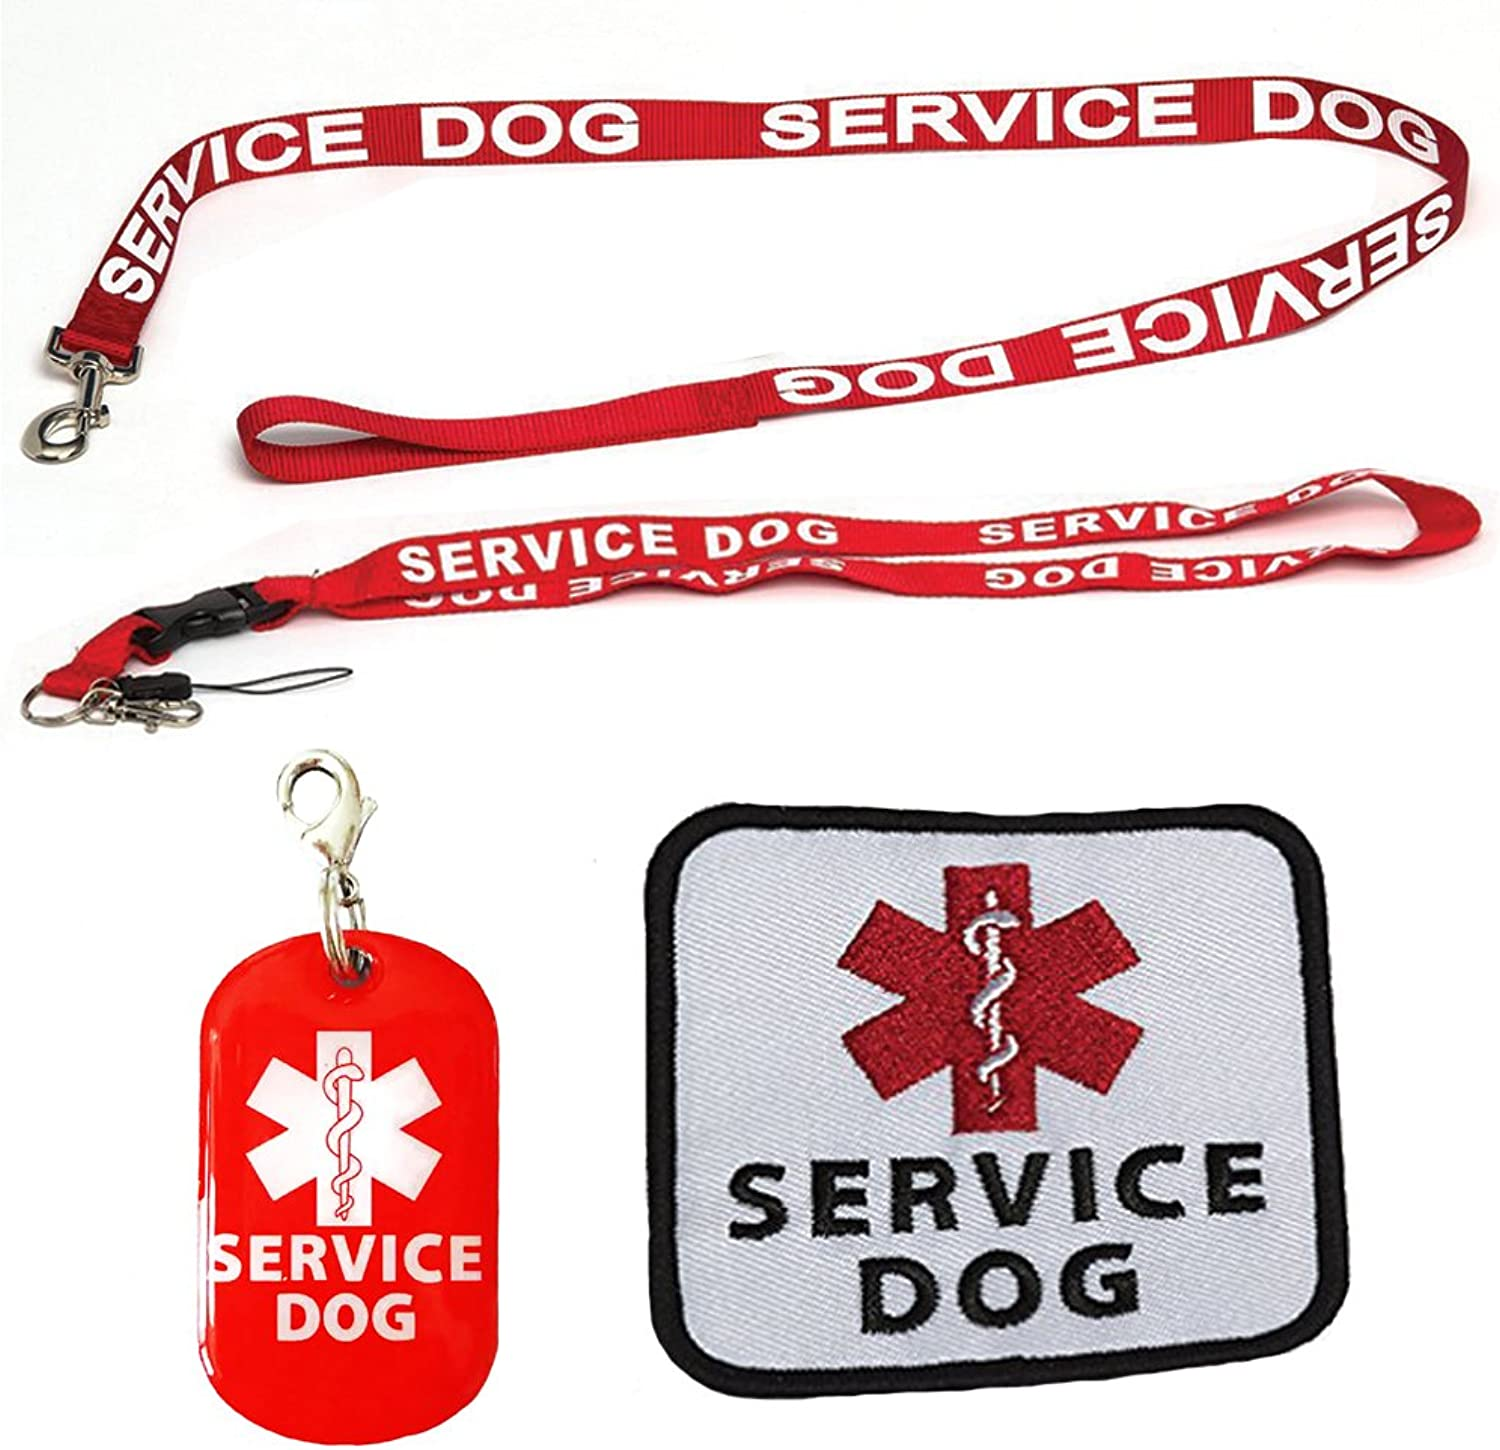 Service Dog Leash with Free Kit  Receive 3 Free Service Dog Bonuses Including  Free Service Dog Collar Tag, Lanyard, and Patch. Limit Time Offer. 100% Lifetime Guarantee on All Service Dog Gear.